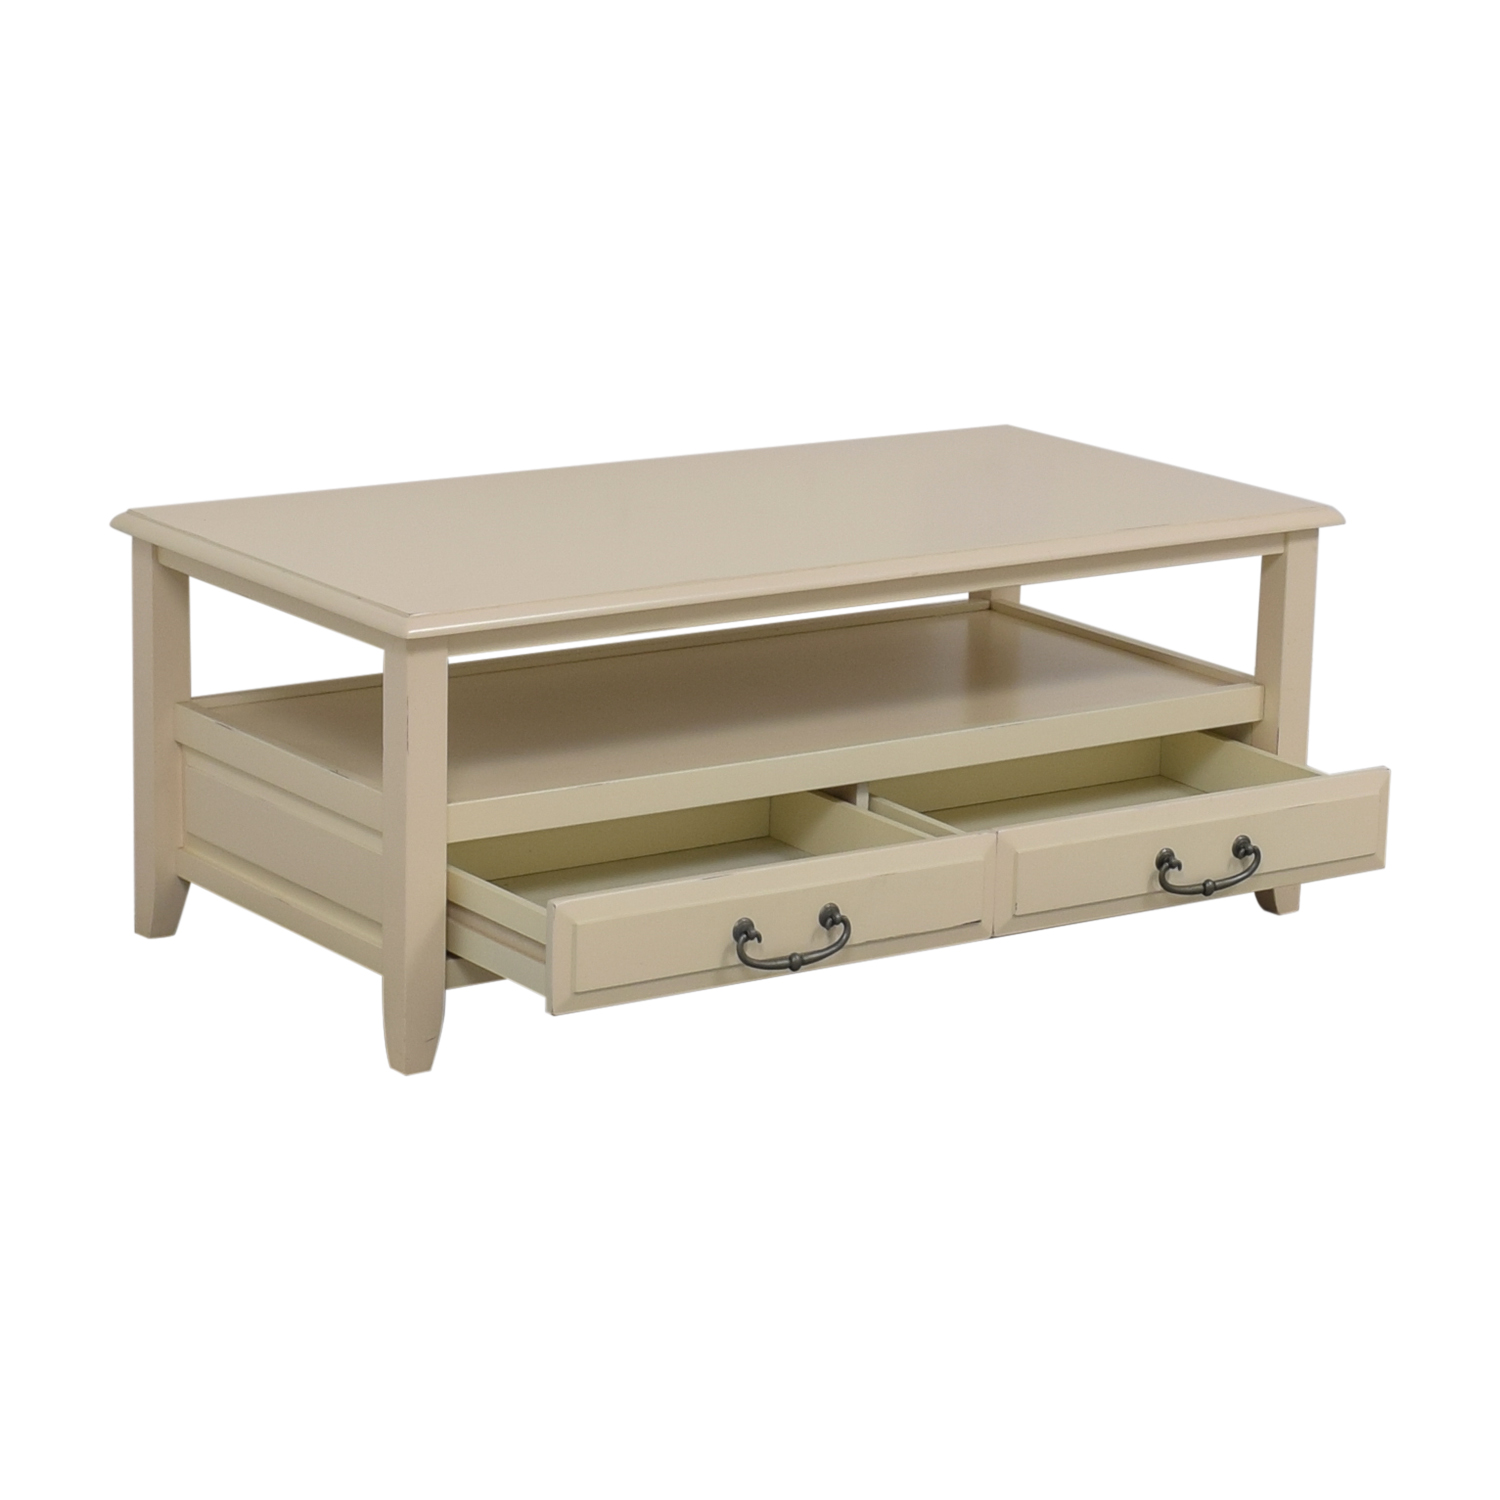 70 off pier 1 pier 1 imports white two drawer coffee table tables